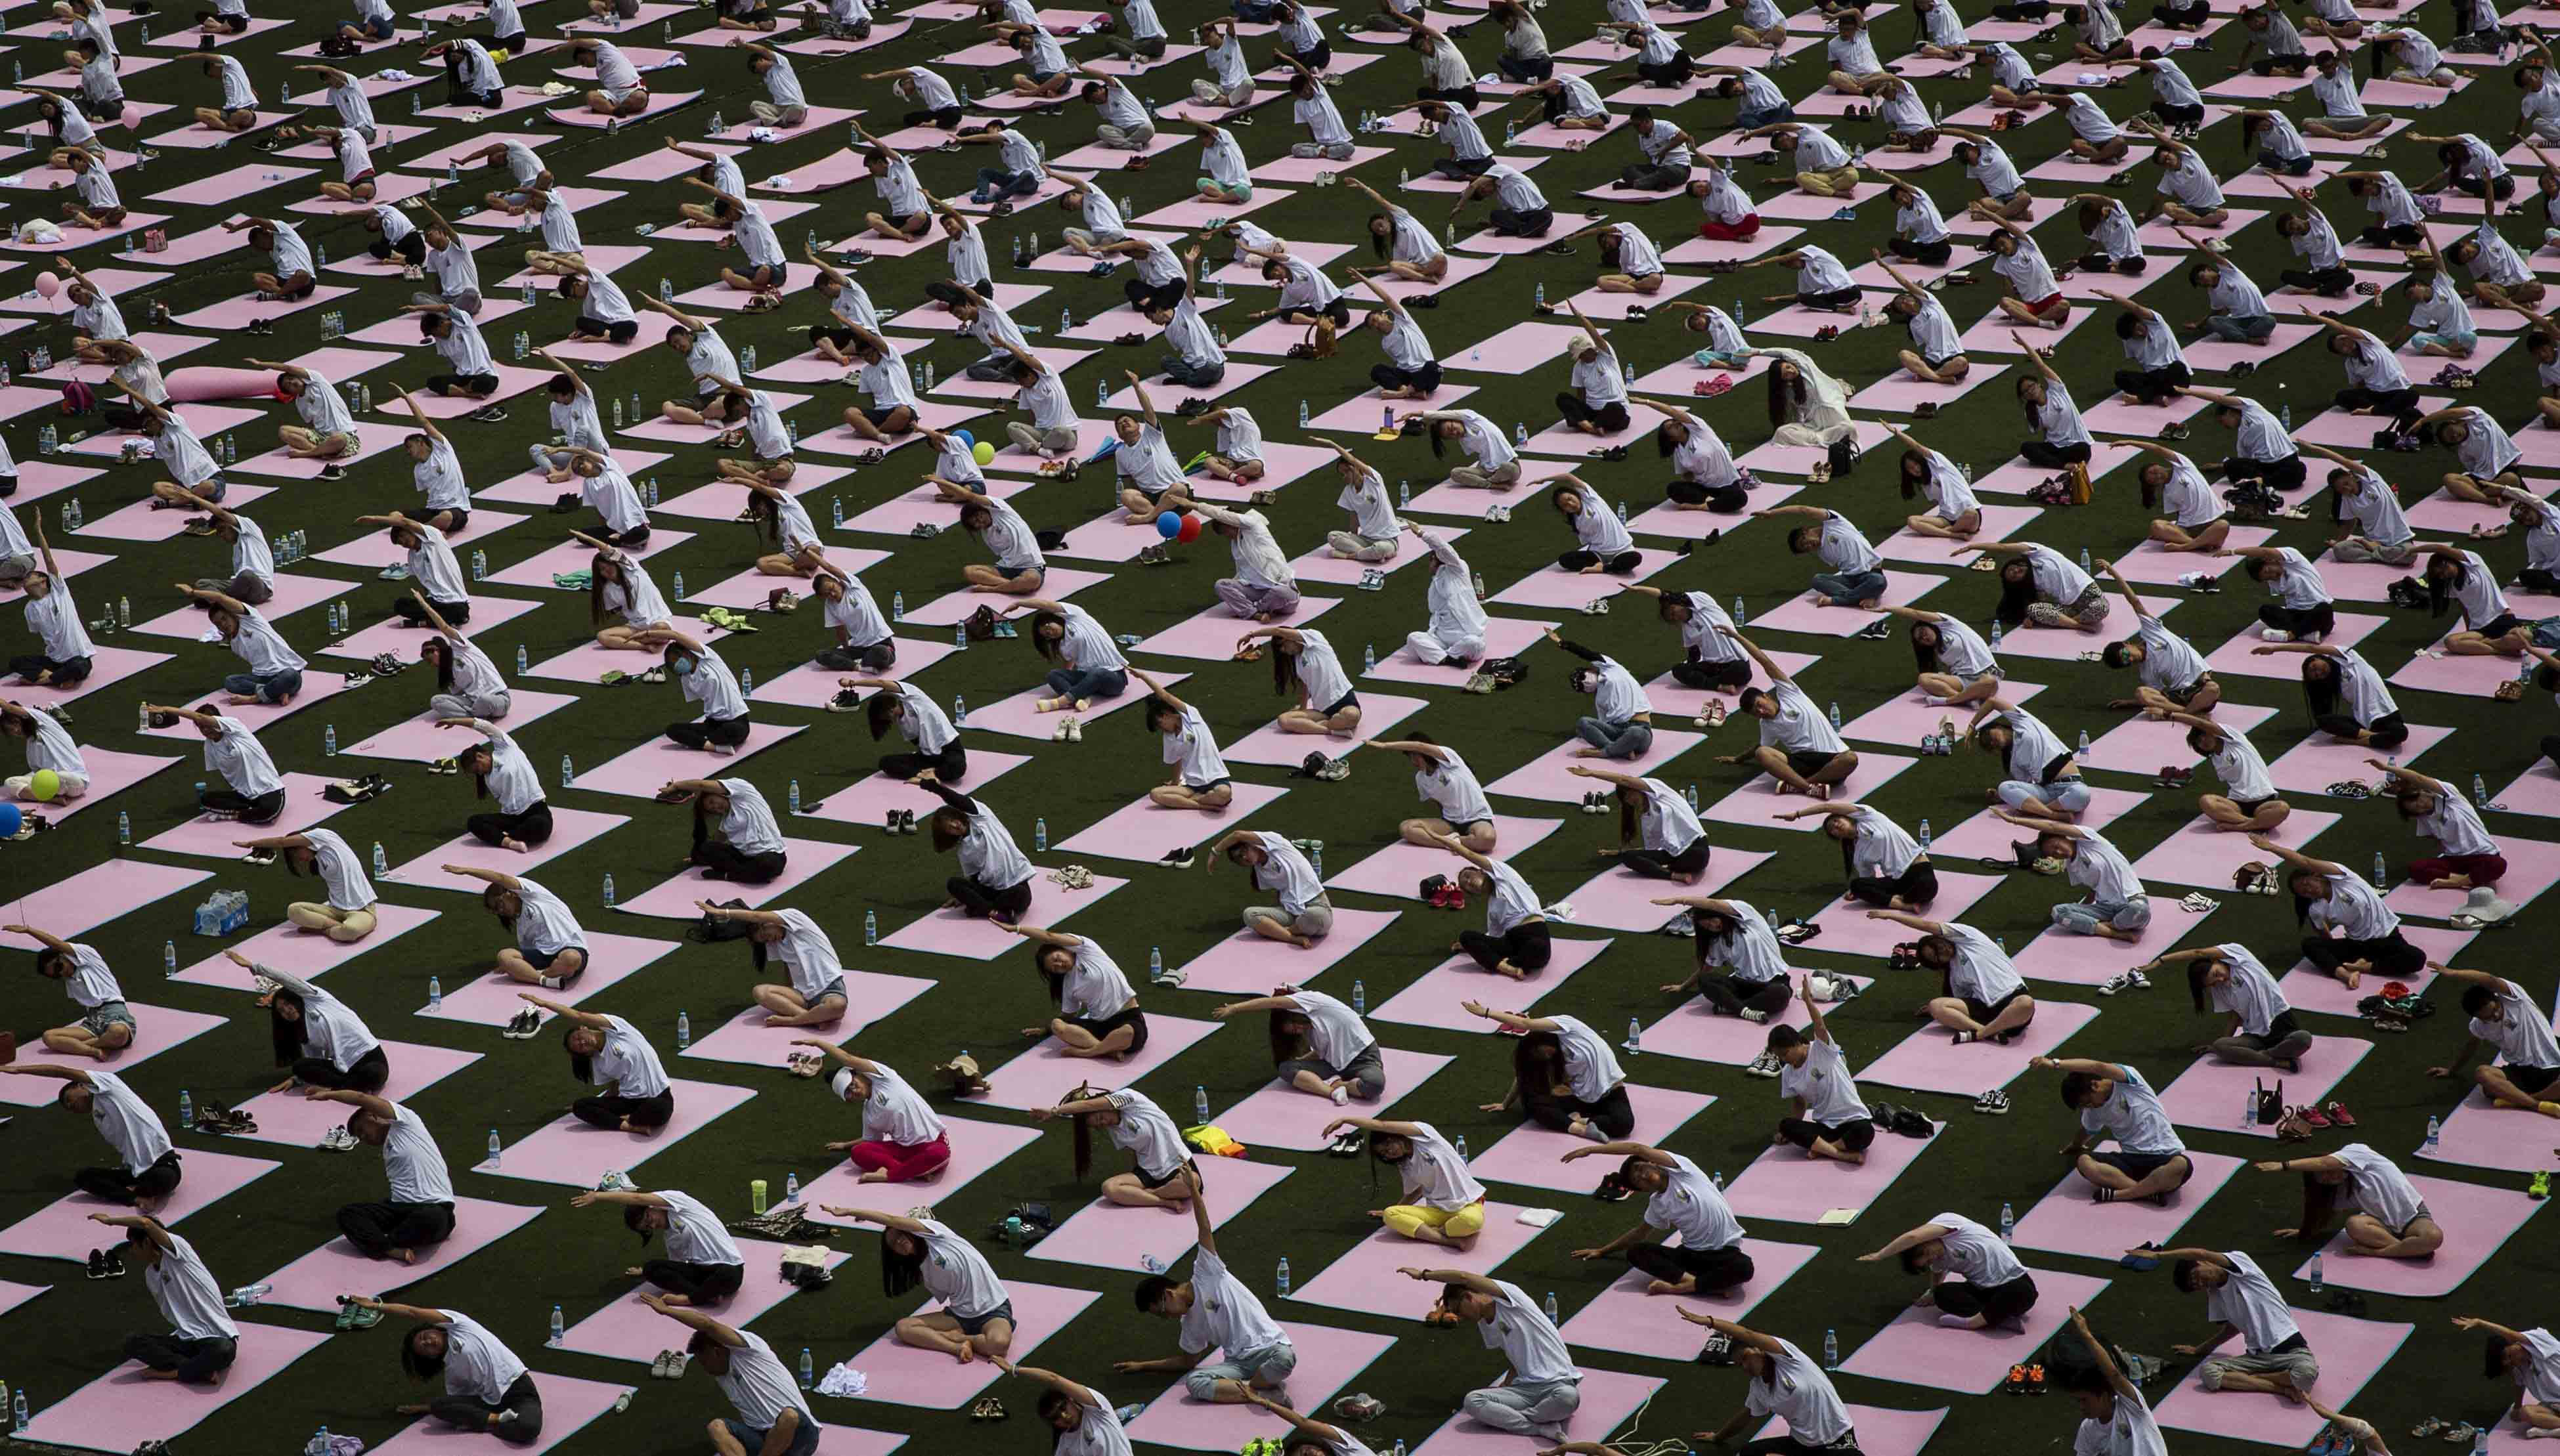 Chinese students from Geely University take part in a yoga workshop marking the International Day of Yoga at an event in Beijing sponsored by the Government of India on June 21, 2015.